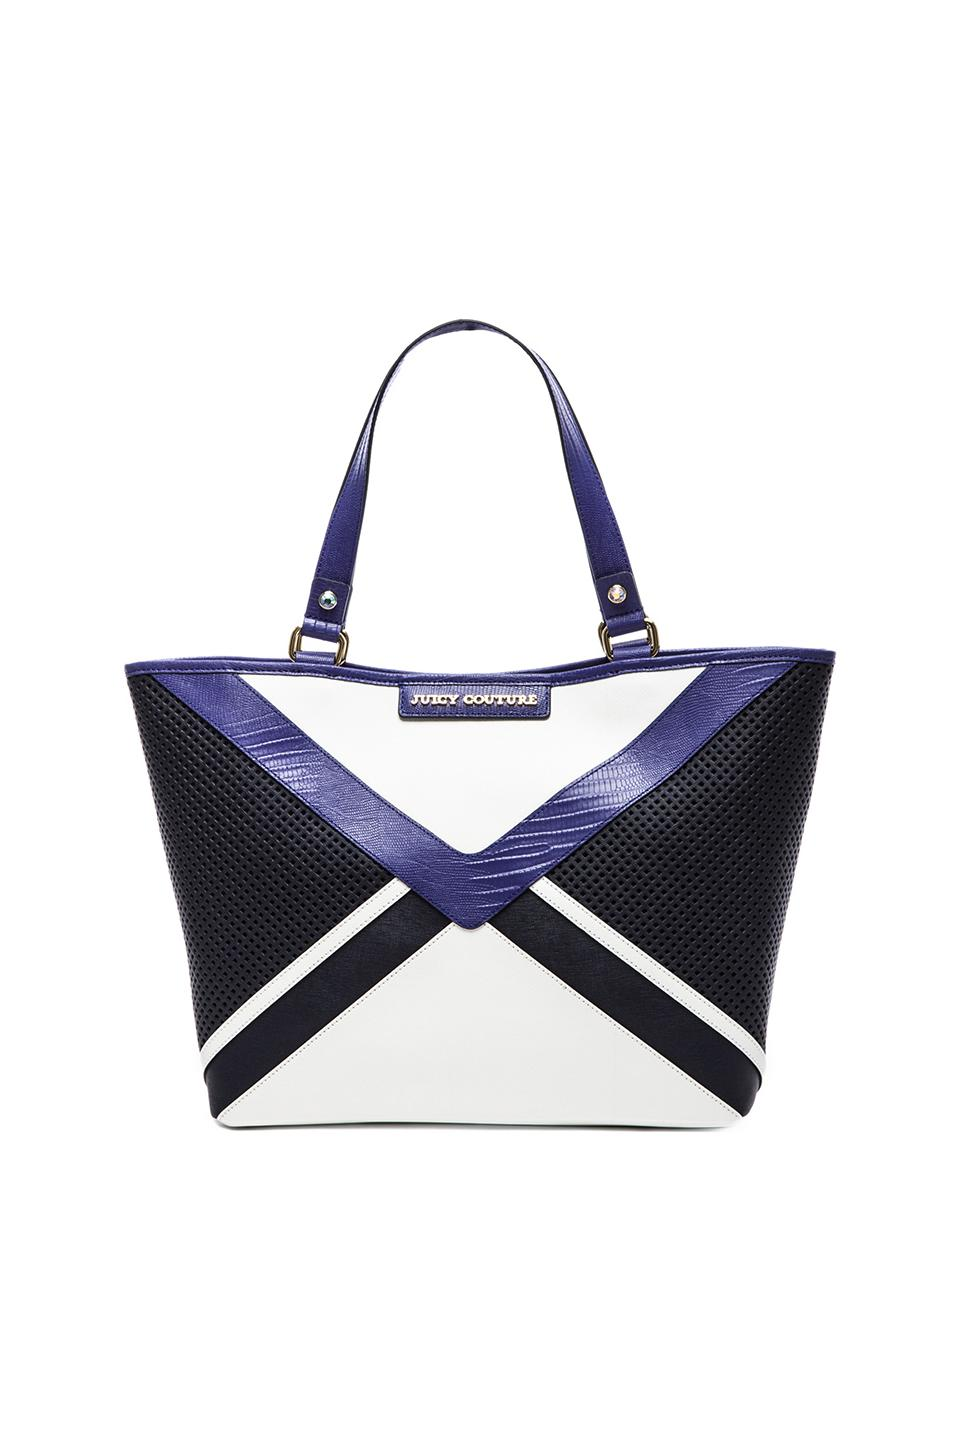 Juicy Couture Sierra Colorblock Tote in Regal Multi